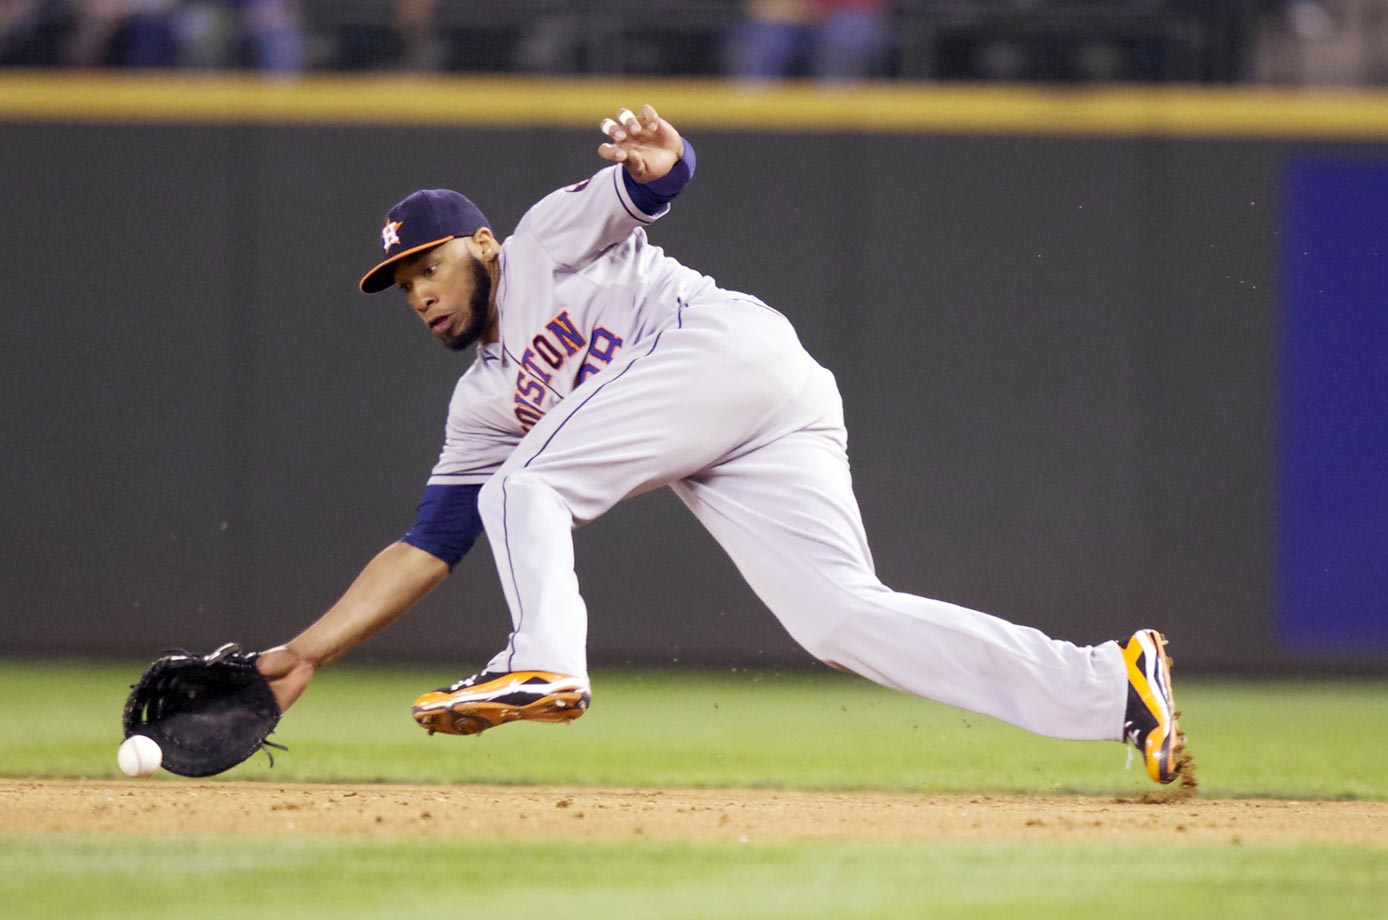 Houston Astros first baseman Jon Singleton tries to field a ground ball against the Seattle Mariners. He wasn't able to get the out.